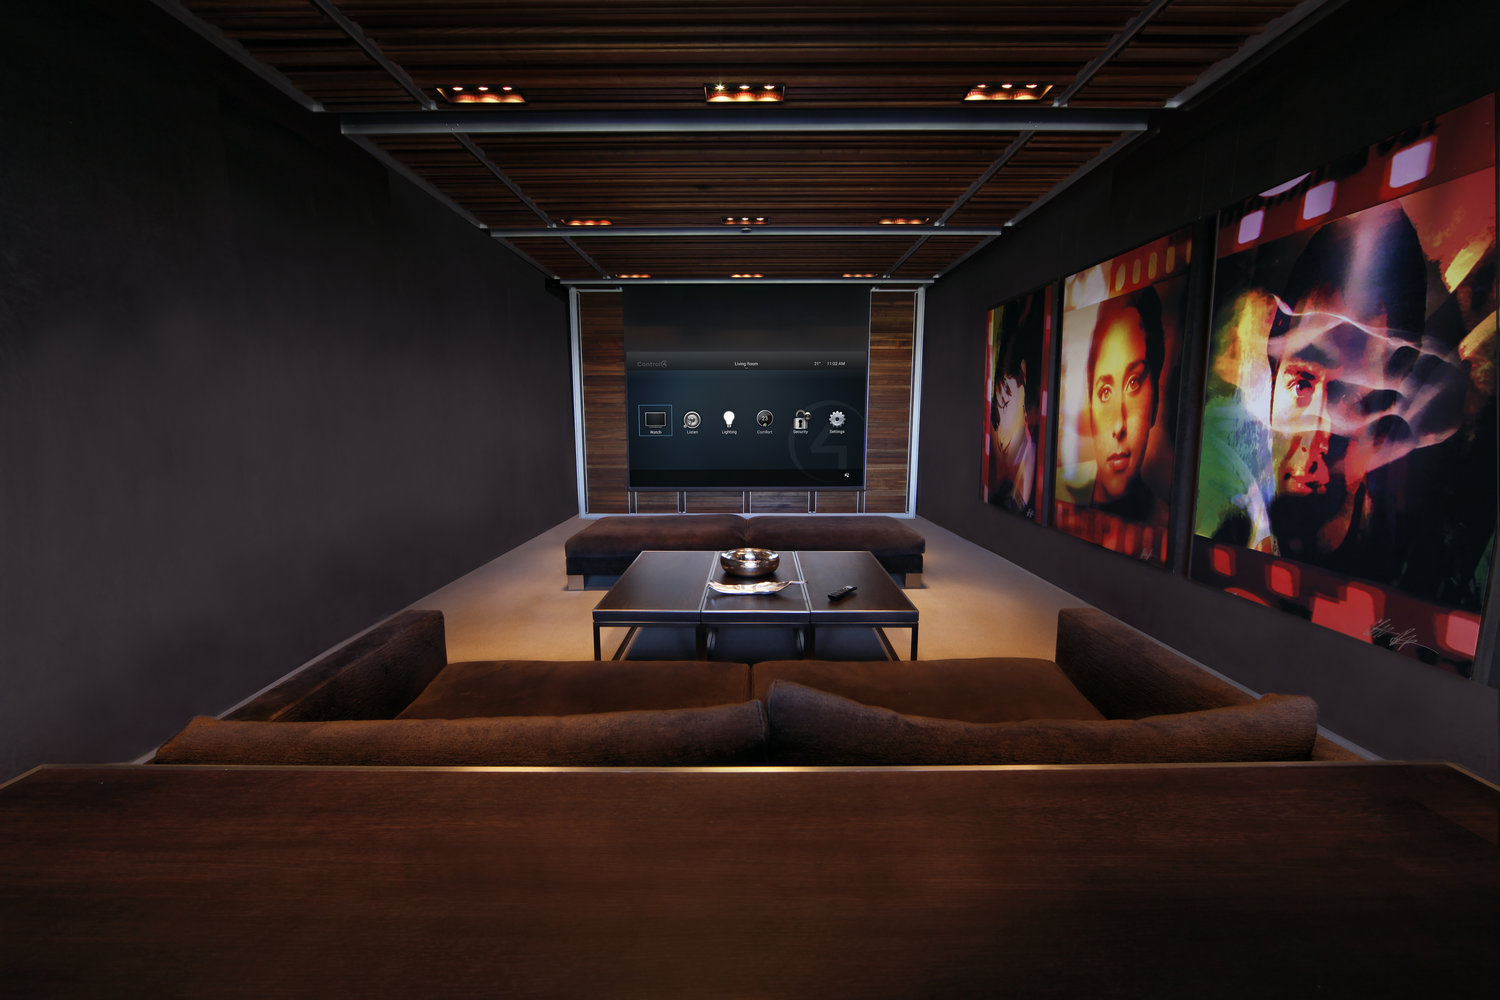 2C Audio Video Home Theater and Home Automations Experts on smart home jacksonville beach, smart home floor plans, smart home icon, smart home systems,